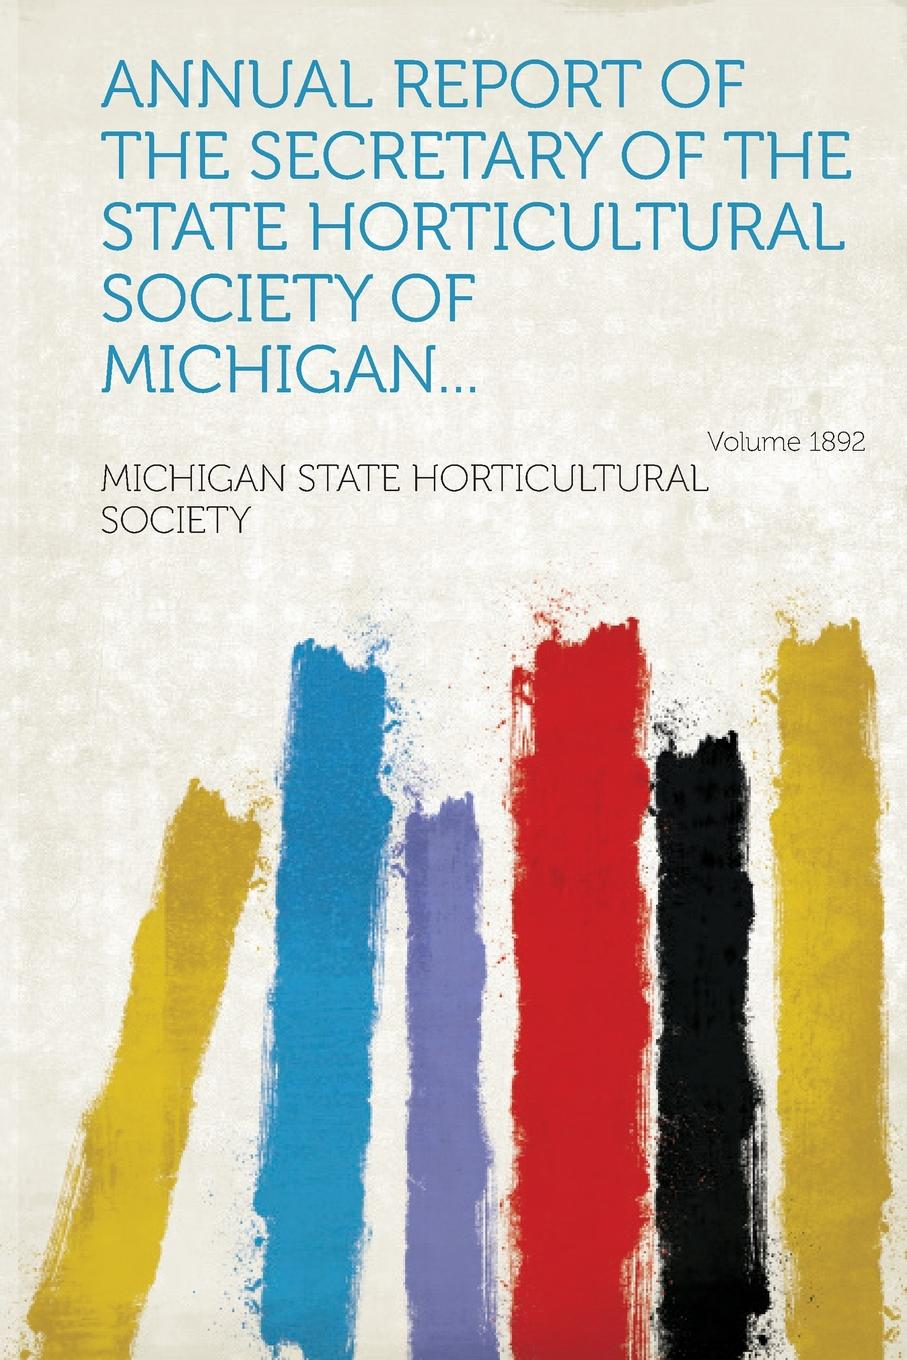 Michigan State Horticultural Society Annual report of the secretary of the State Horticultural Society of Michigan... Year 1892